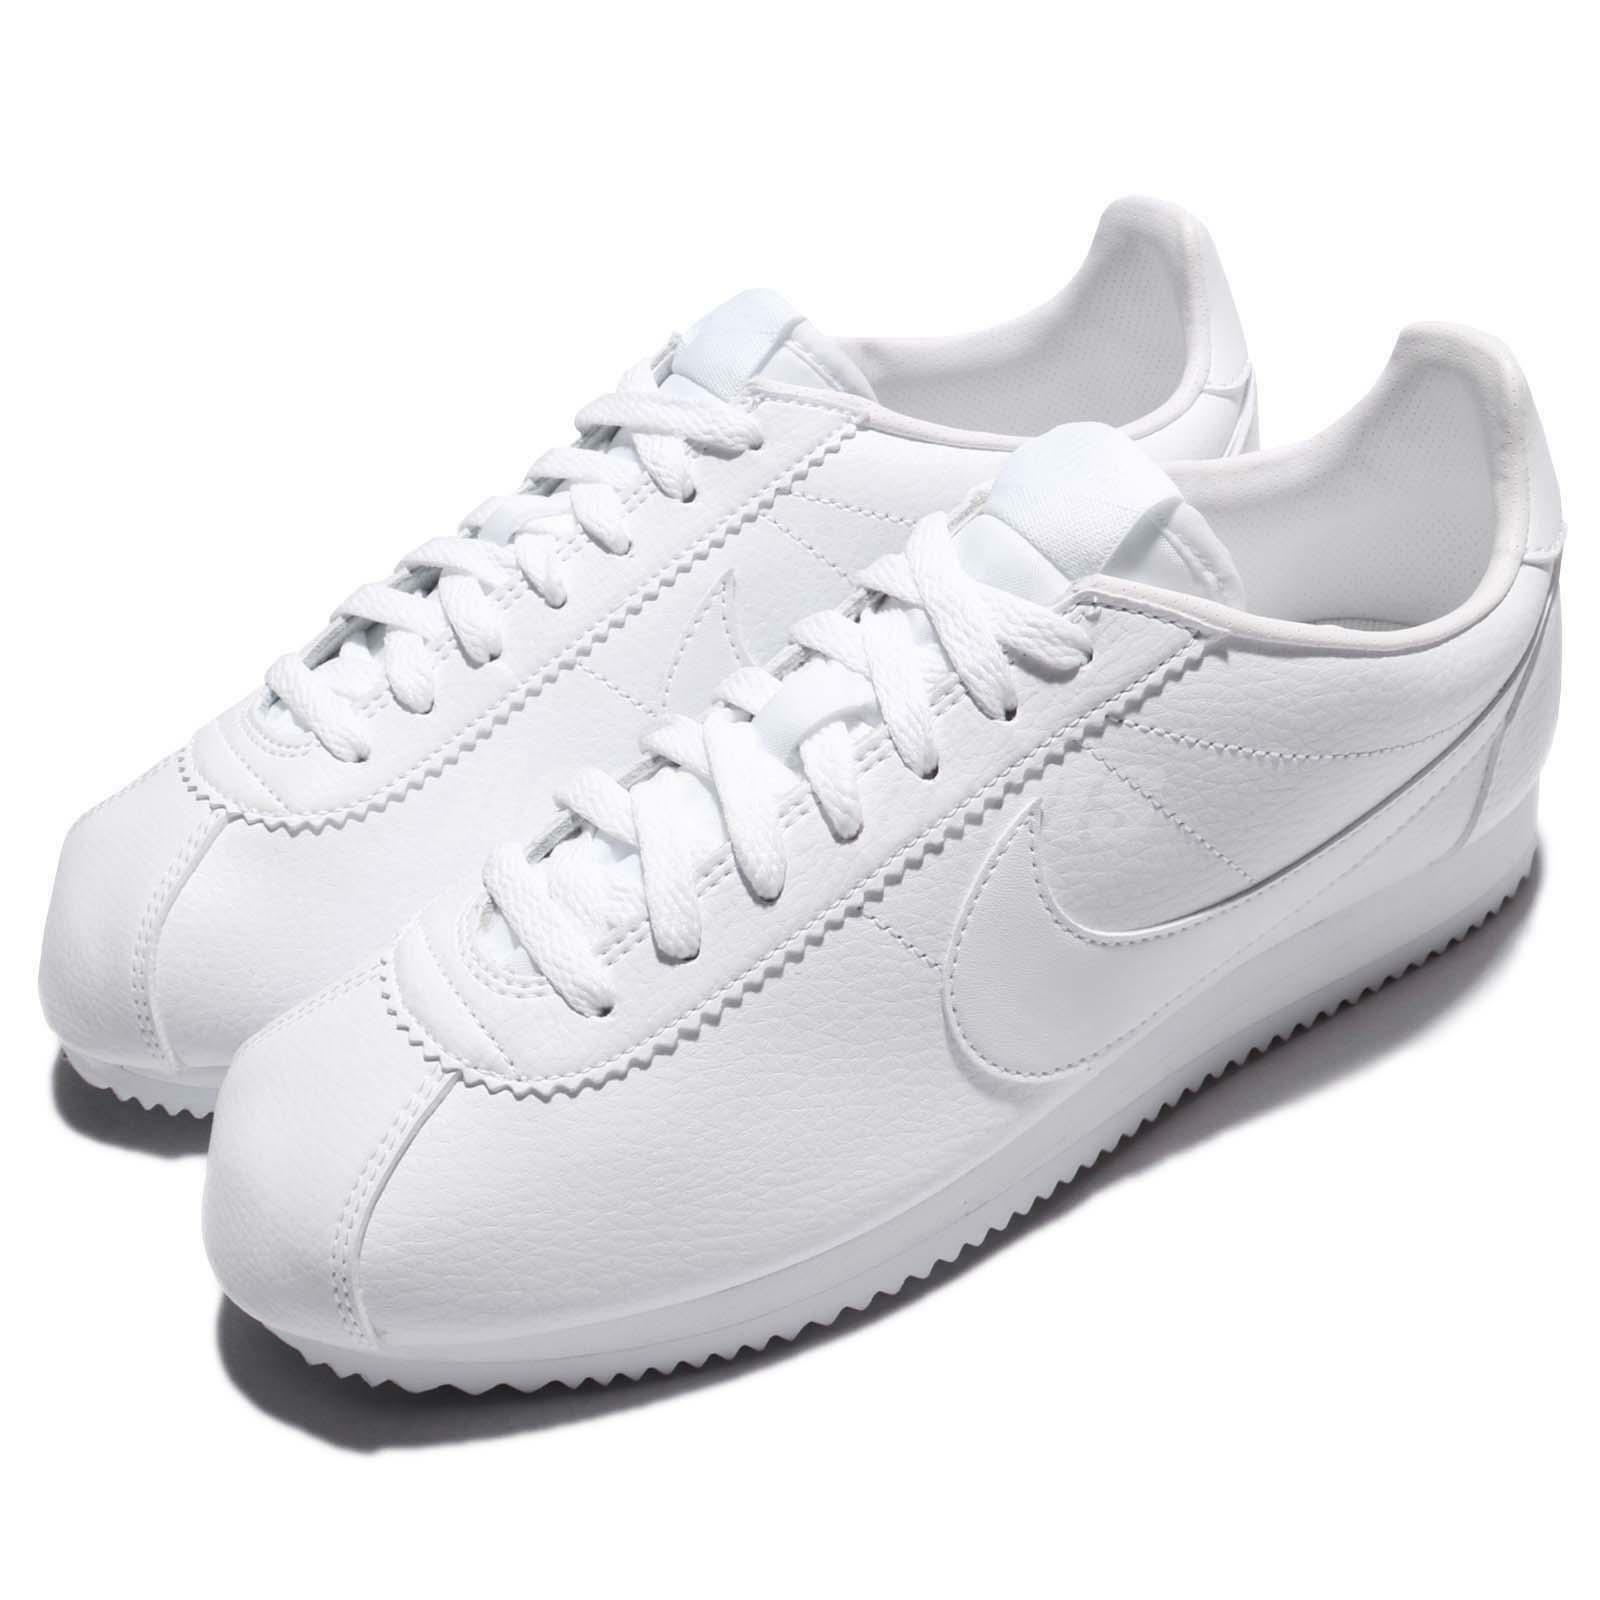 new arrival be451 95f58 Nike Classic Classic Classic Cortez Leather Triple White Men Running Shoes  Sneakers 749571-111 1fe606